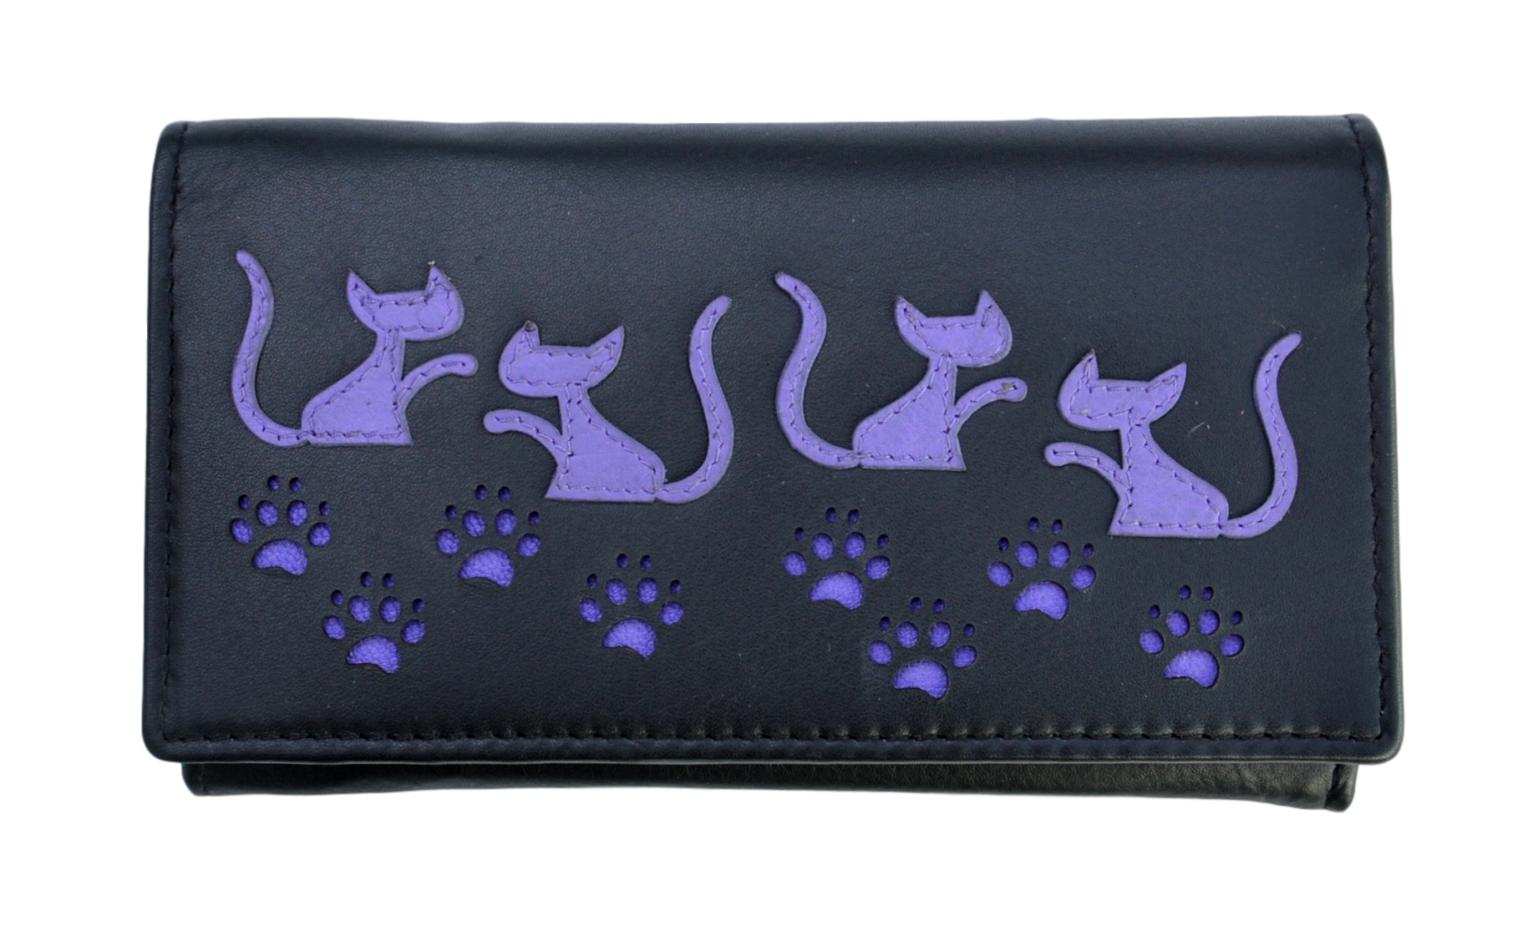 Mala Leather Black Large Cat Purse